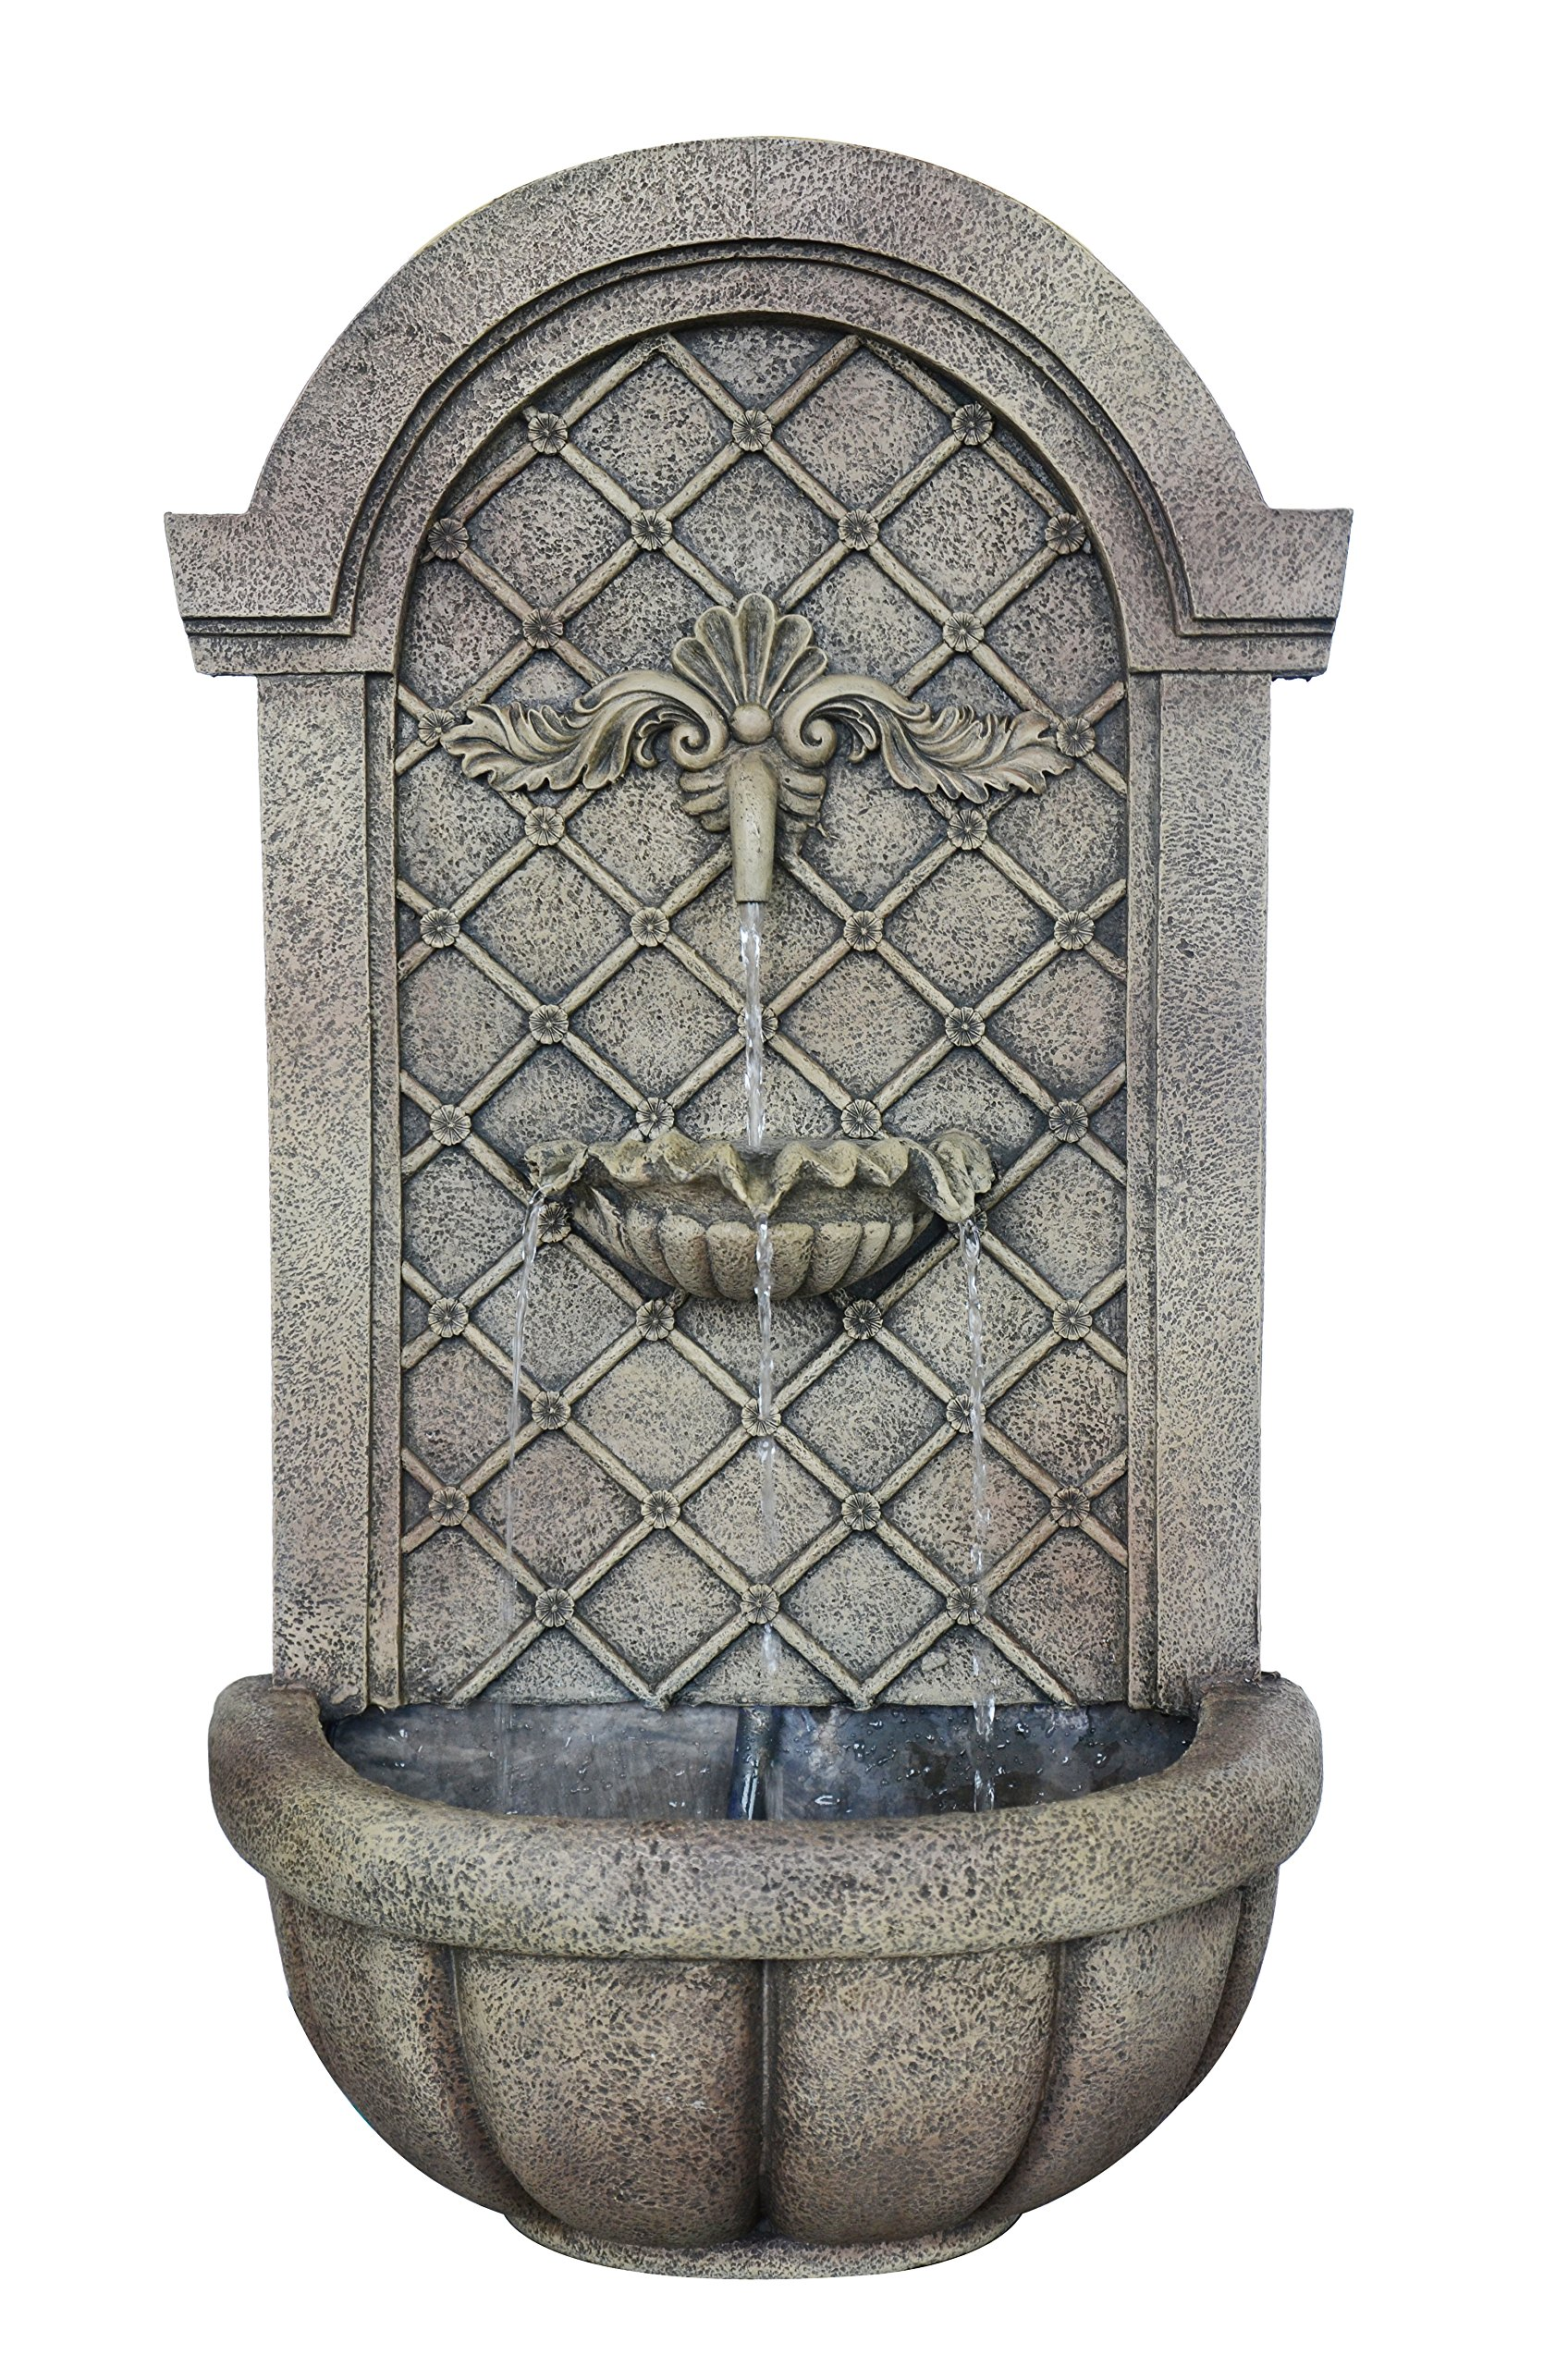 The Manchester - Outdoor Wall Fountain - Florentine Stone Finish - Water Feature for Garden, Patio and Landscape Enhancement